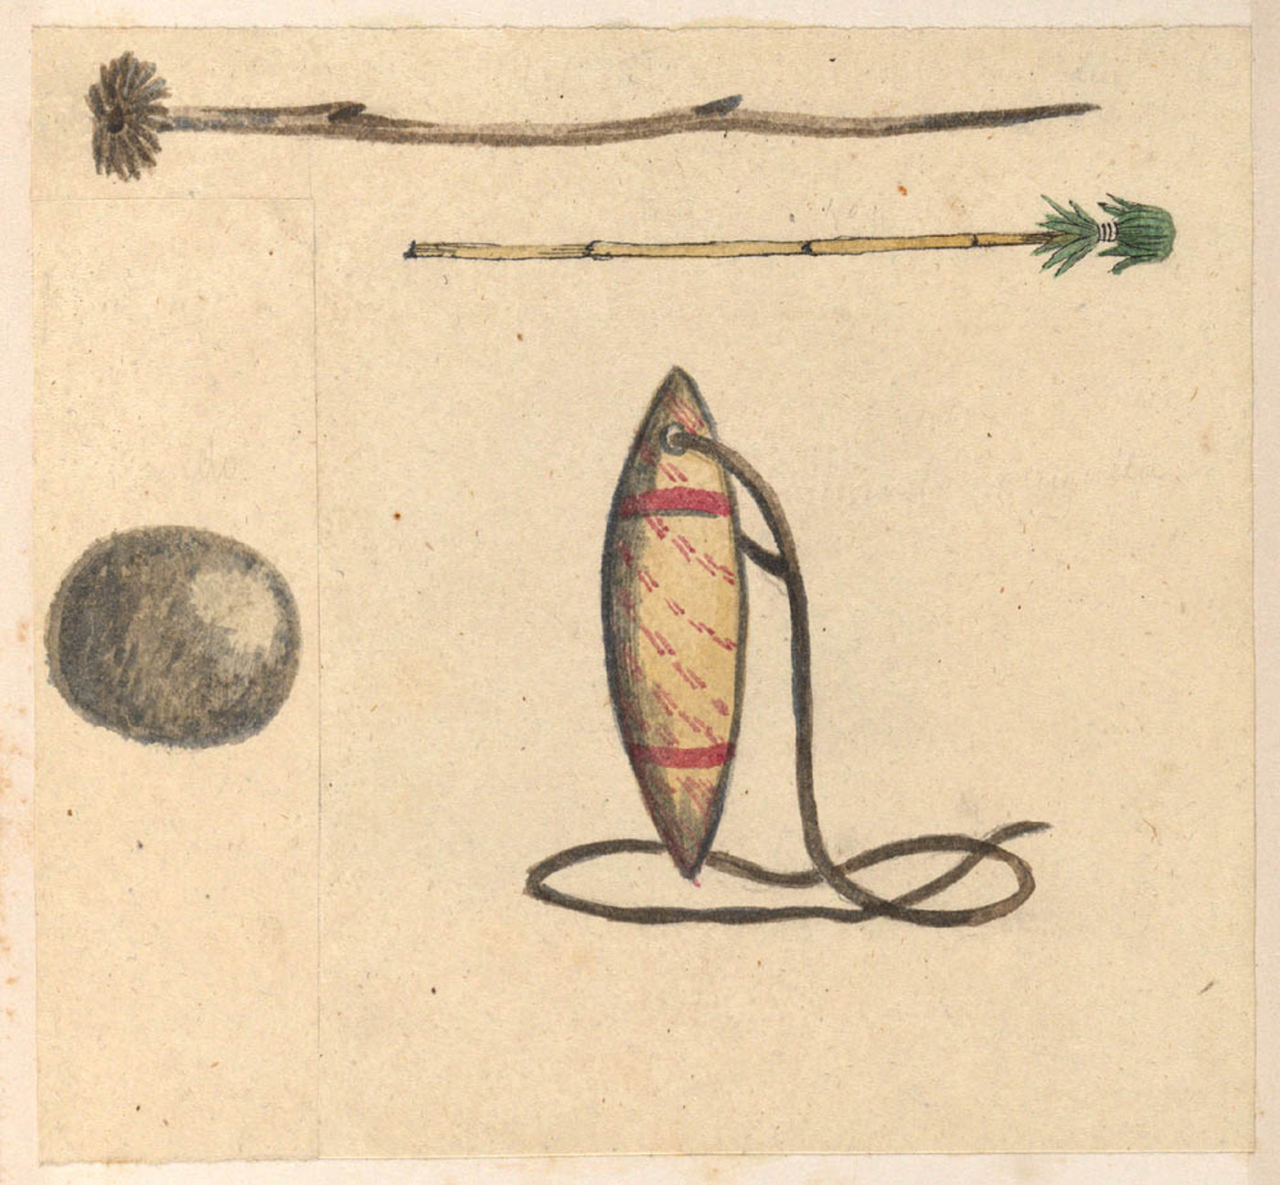 Pando (ball) and Kandomarugutta (sling) from the AW Cawthorne papers held in the Mitchell Library dating from the 1840s.